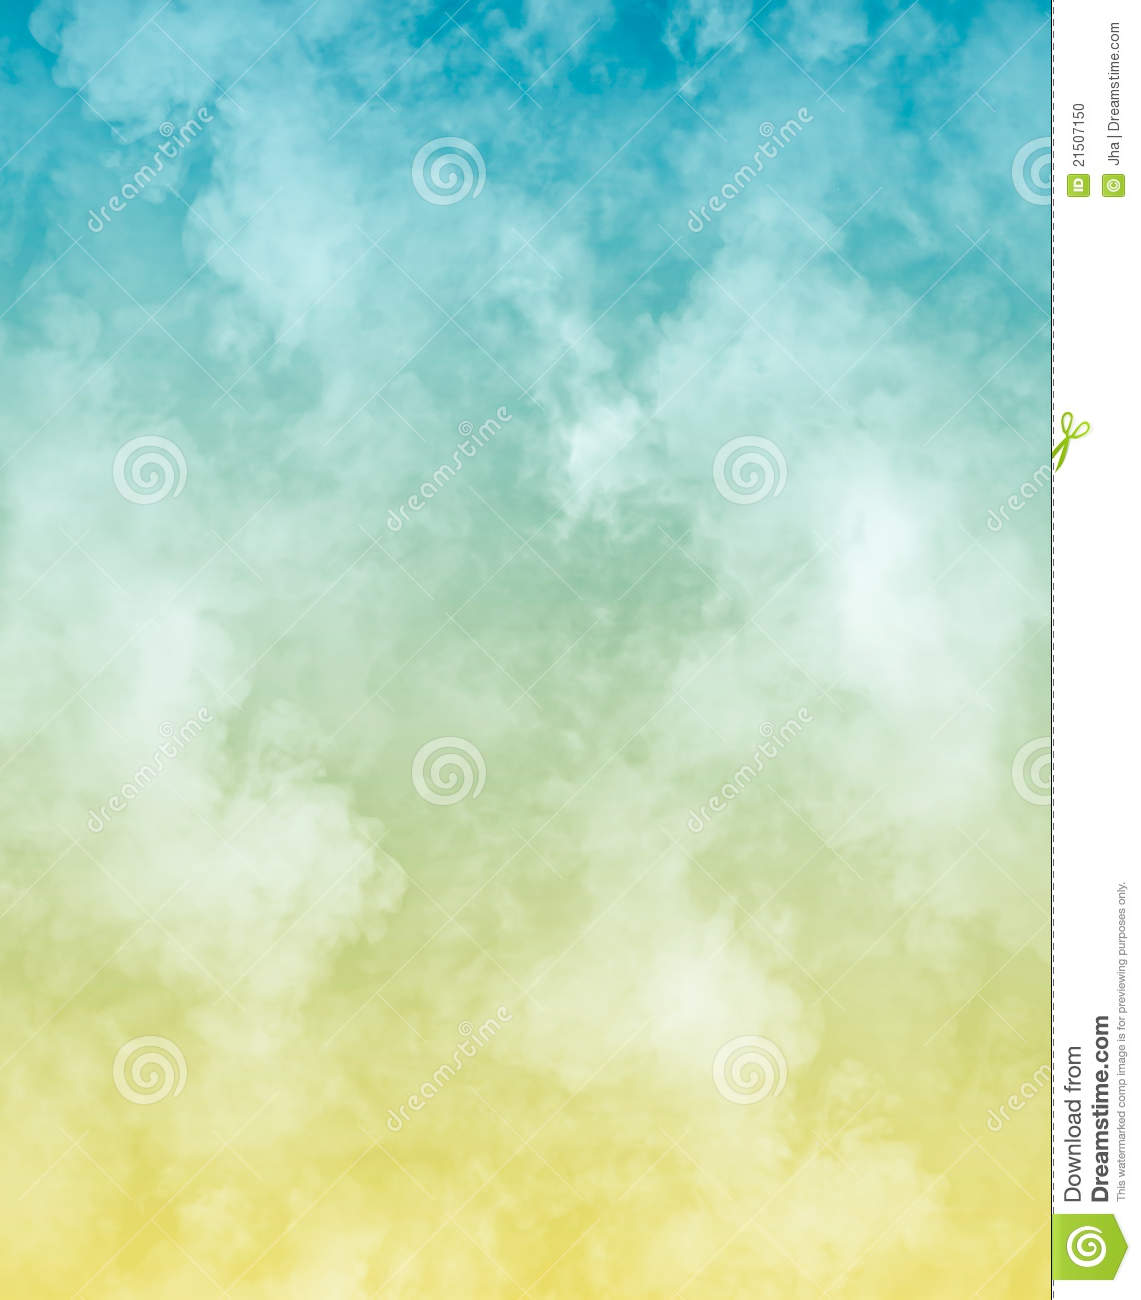 Dreamy Clouds Stock Photo - Image: 21507150